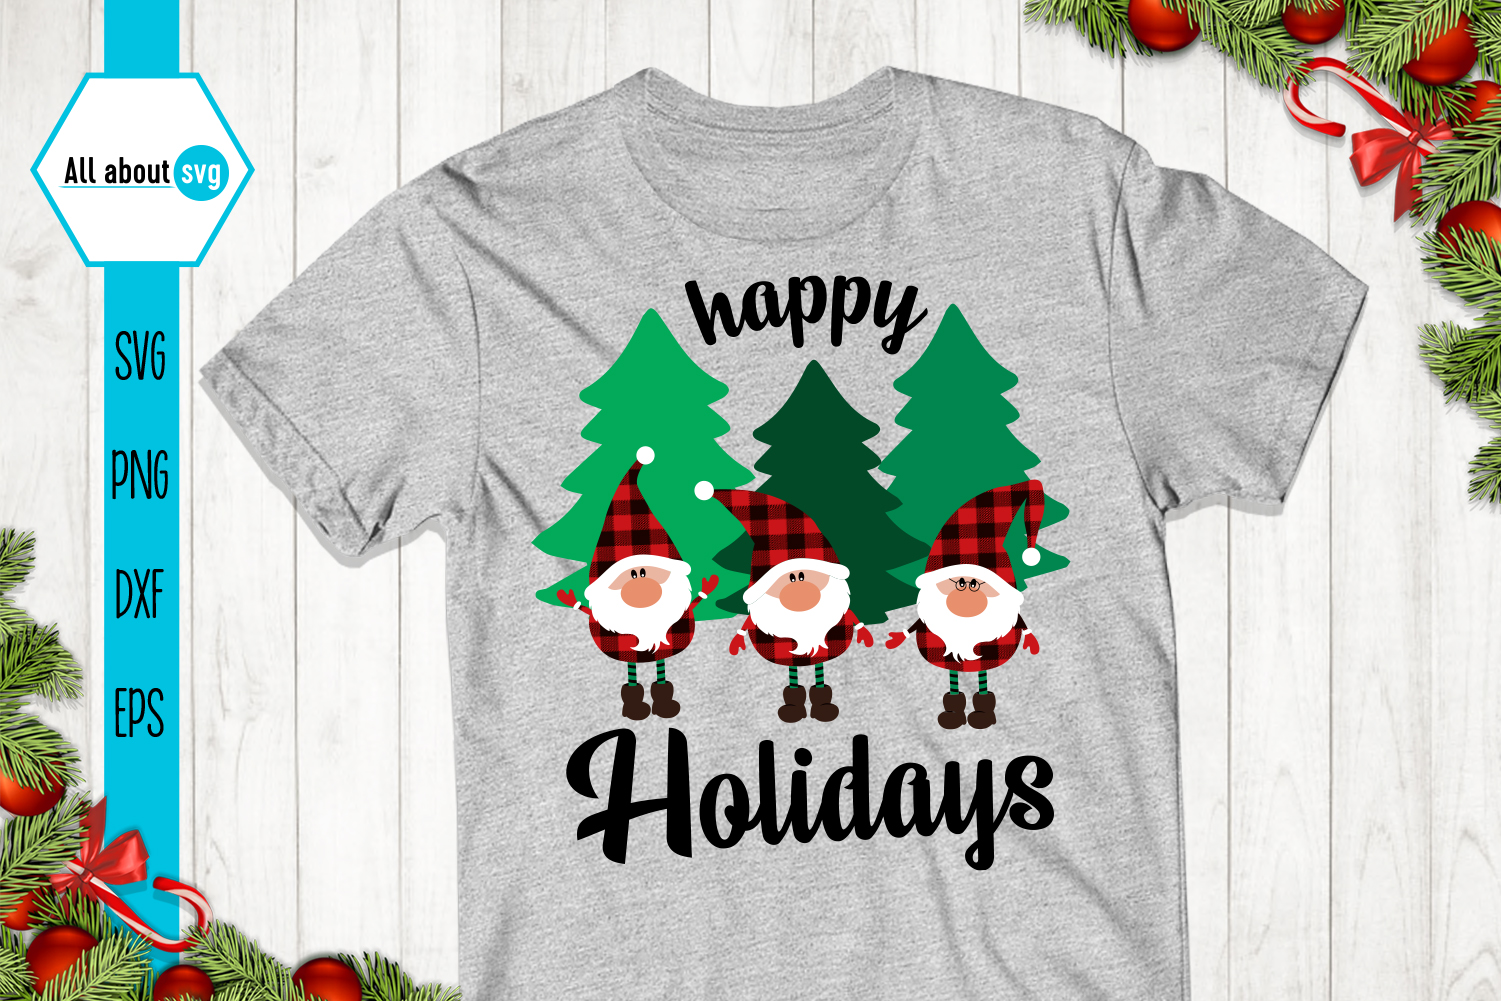 Happy Holidays Svg, Gnomies Buffalo Plaid Svg example image 2